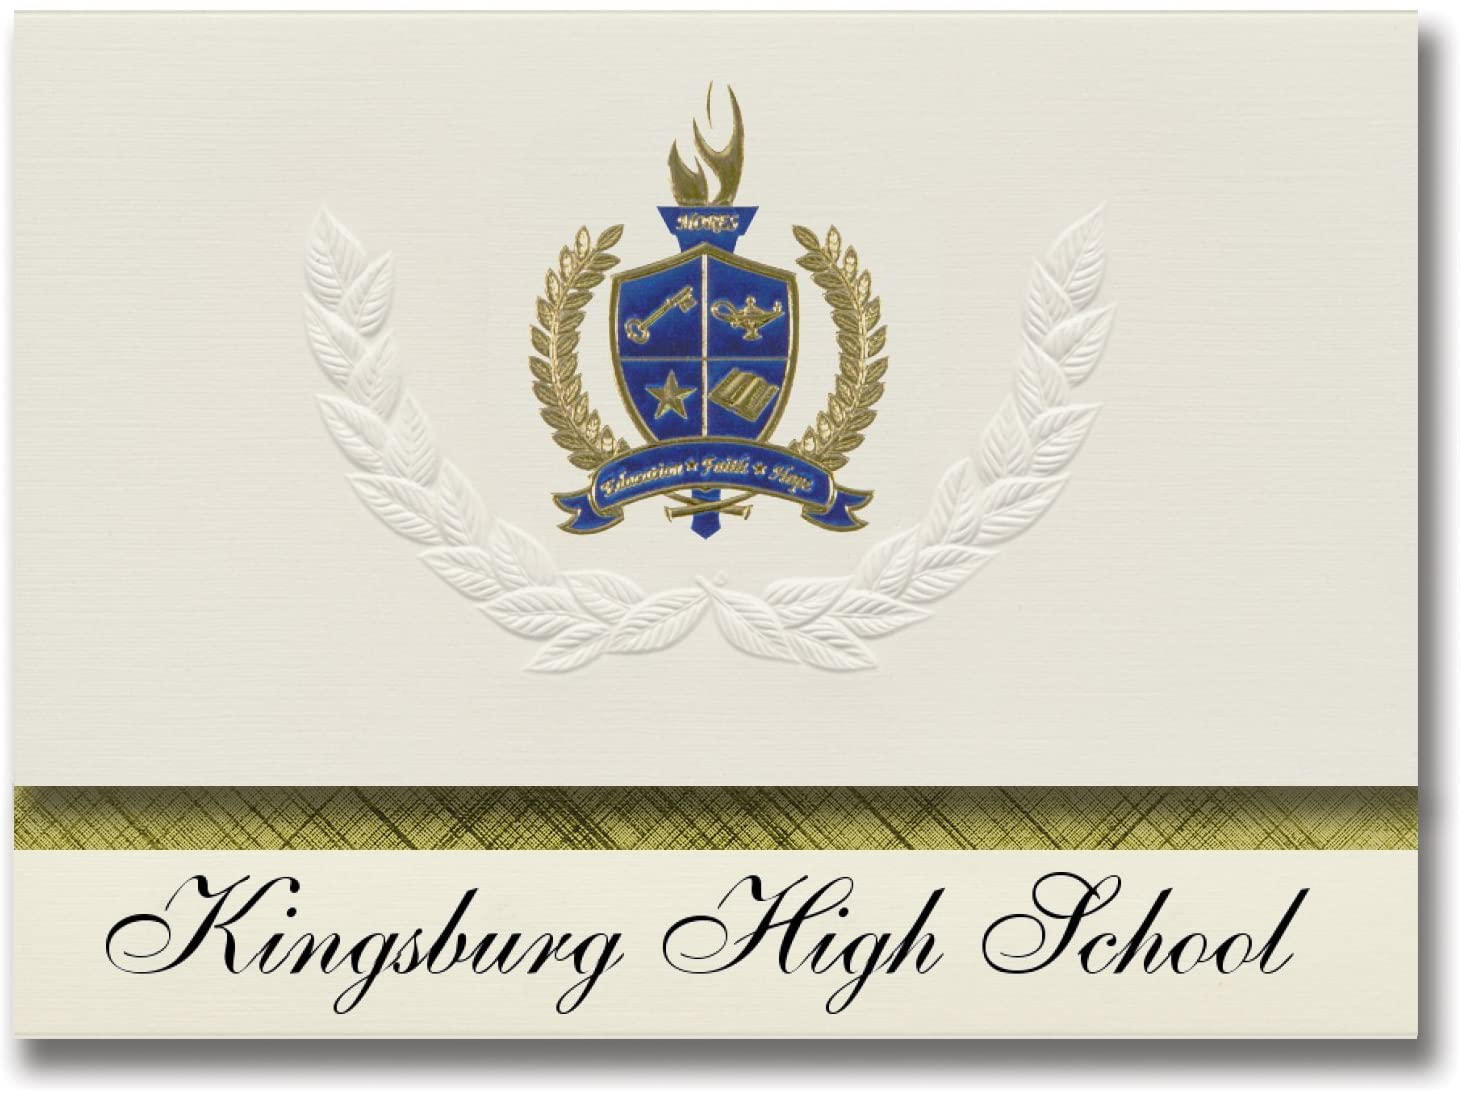 Signature Announcements Kingsburg High School (Kingsburg, CA) Graduation Announcements, Presidential style, Basic package of 25 with Gold & Blue Metallic Foil seal